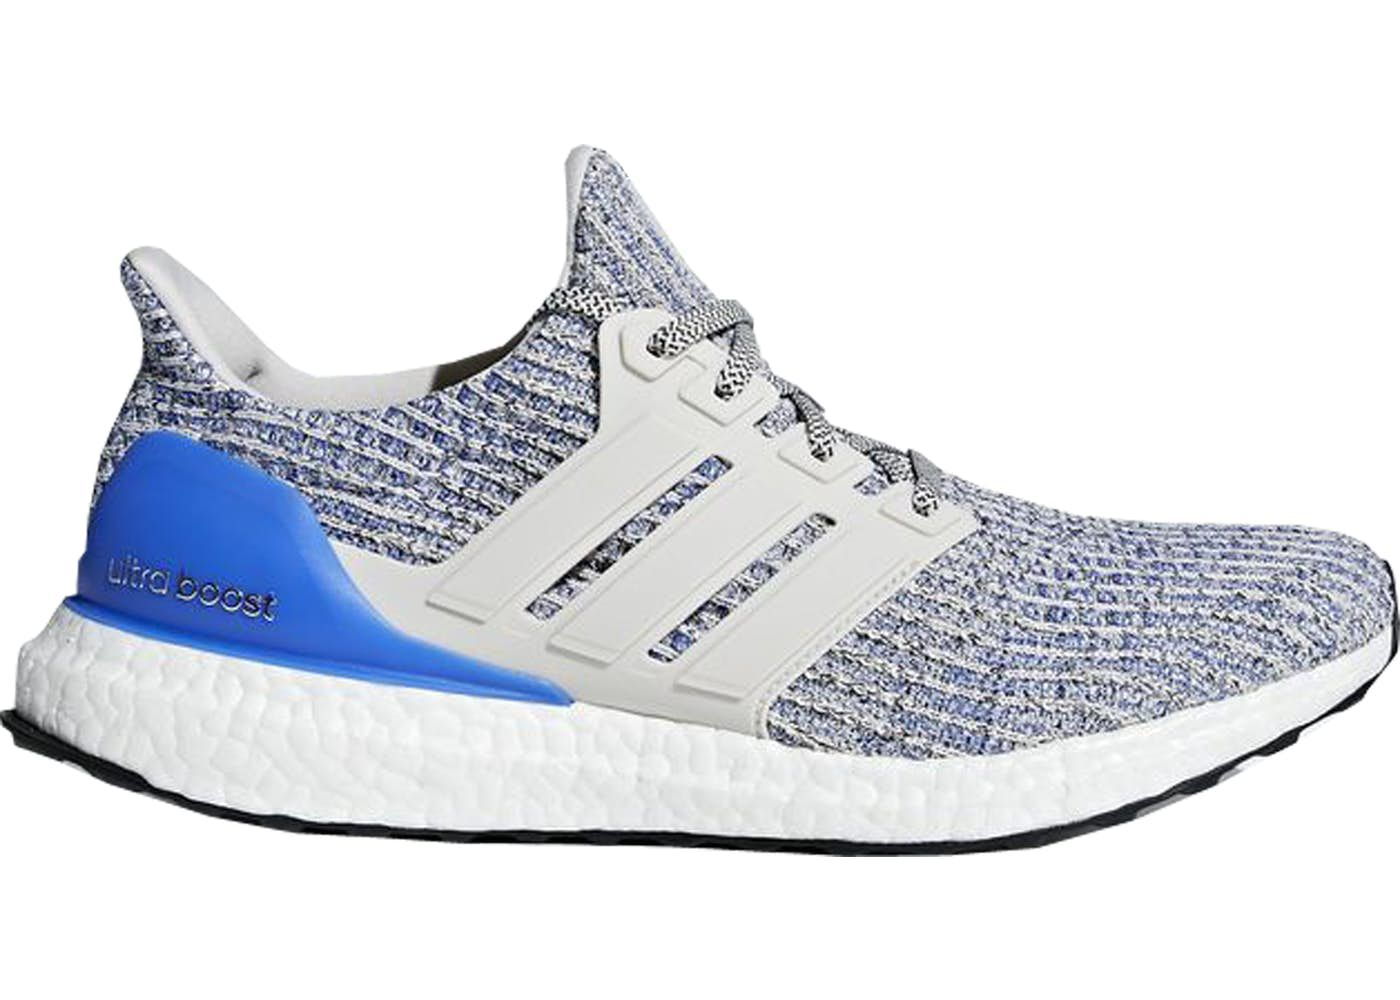 efa59633 adidas 4.0 White/Royal in 2019 | Shoes | Adidas, Adidas ultra boost ...